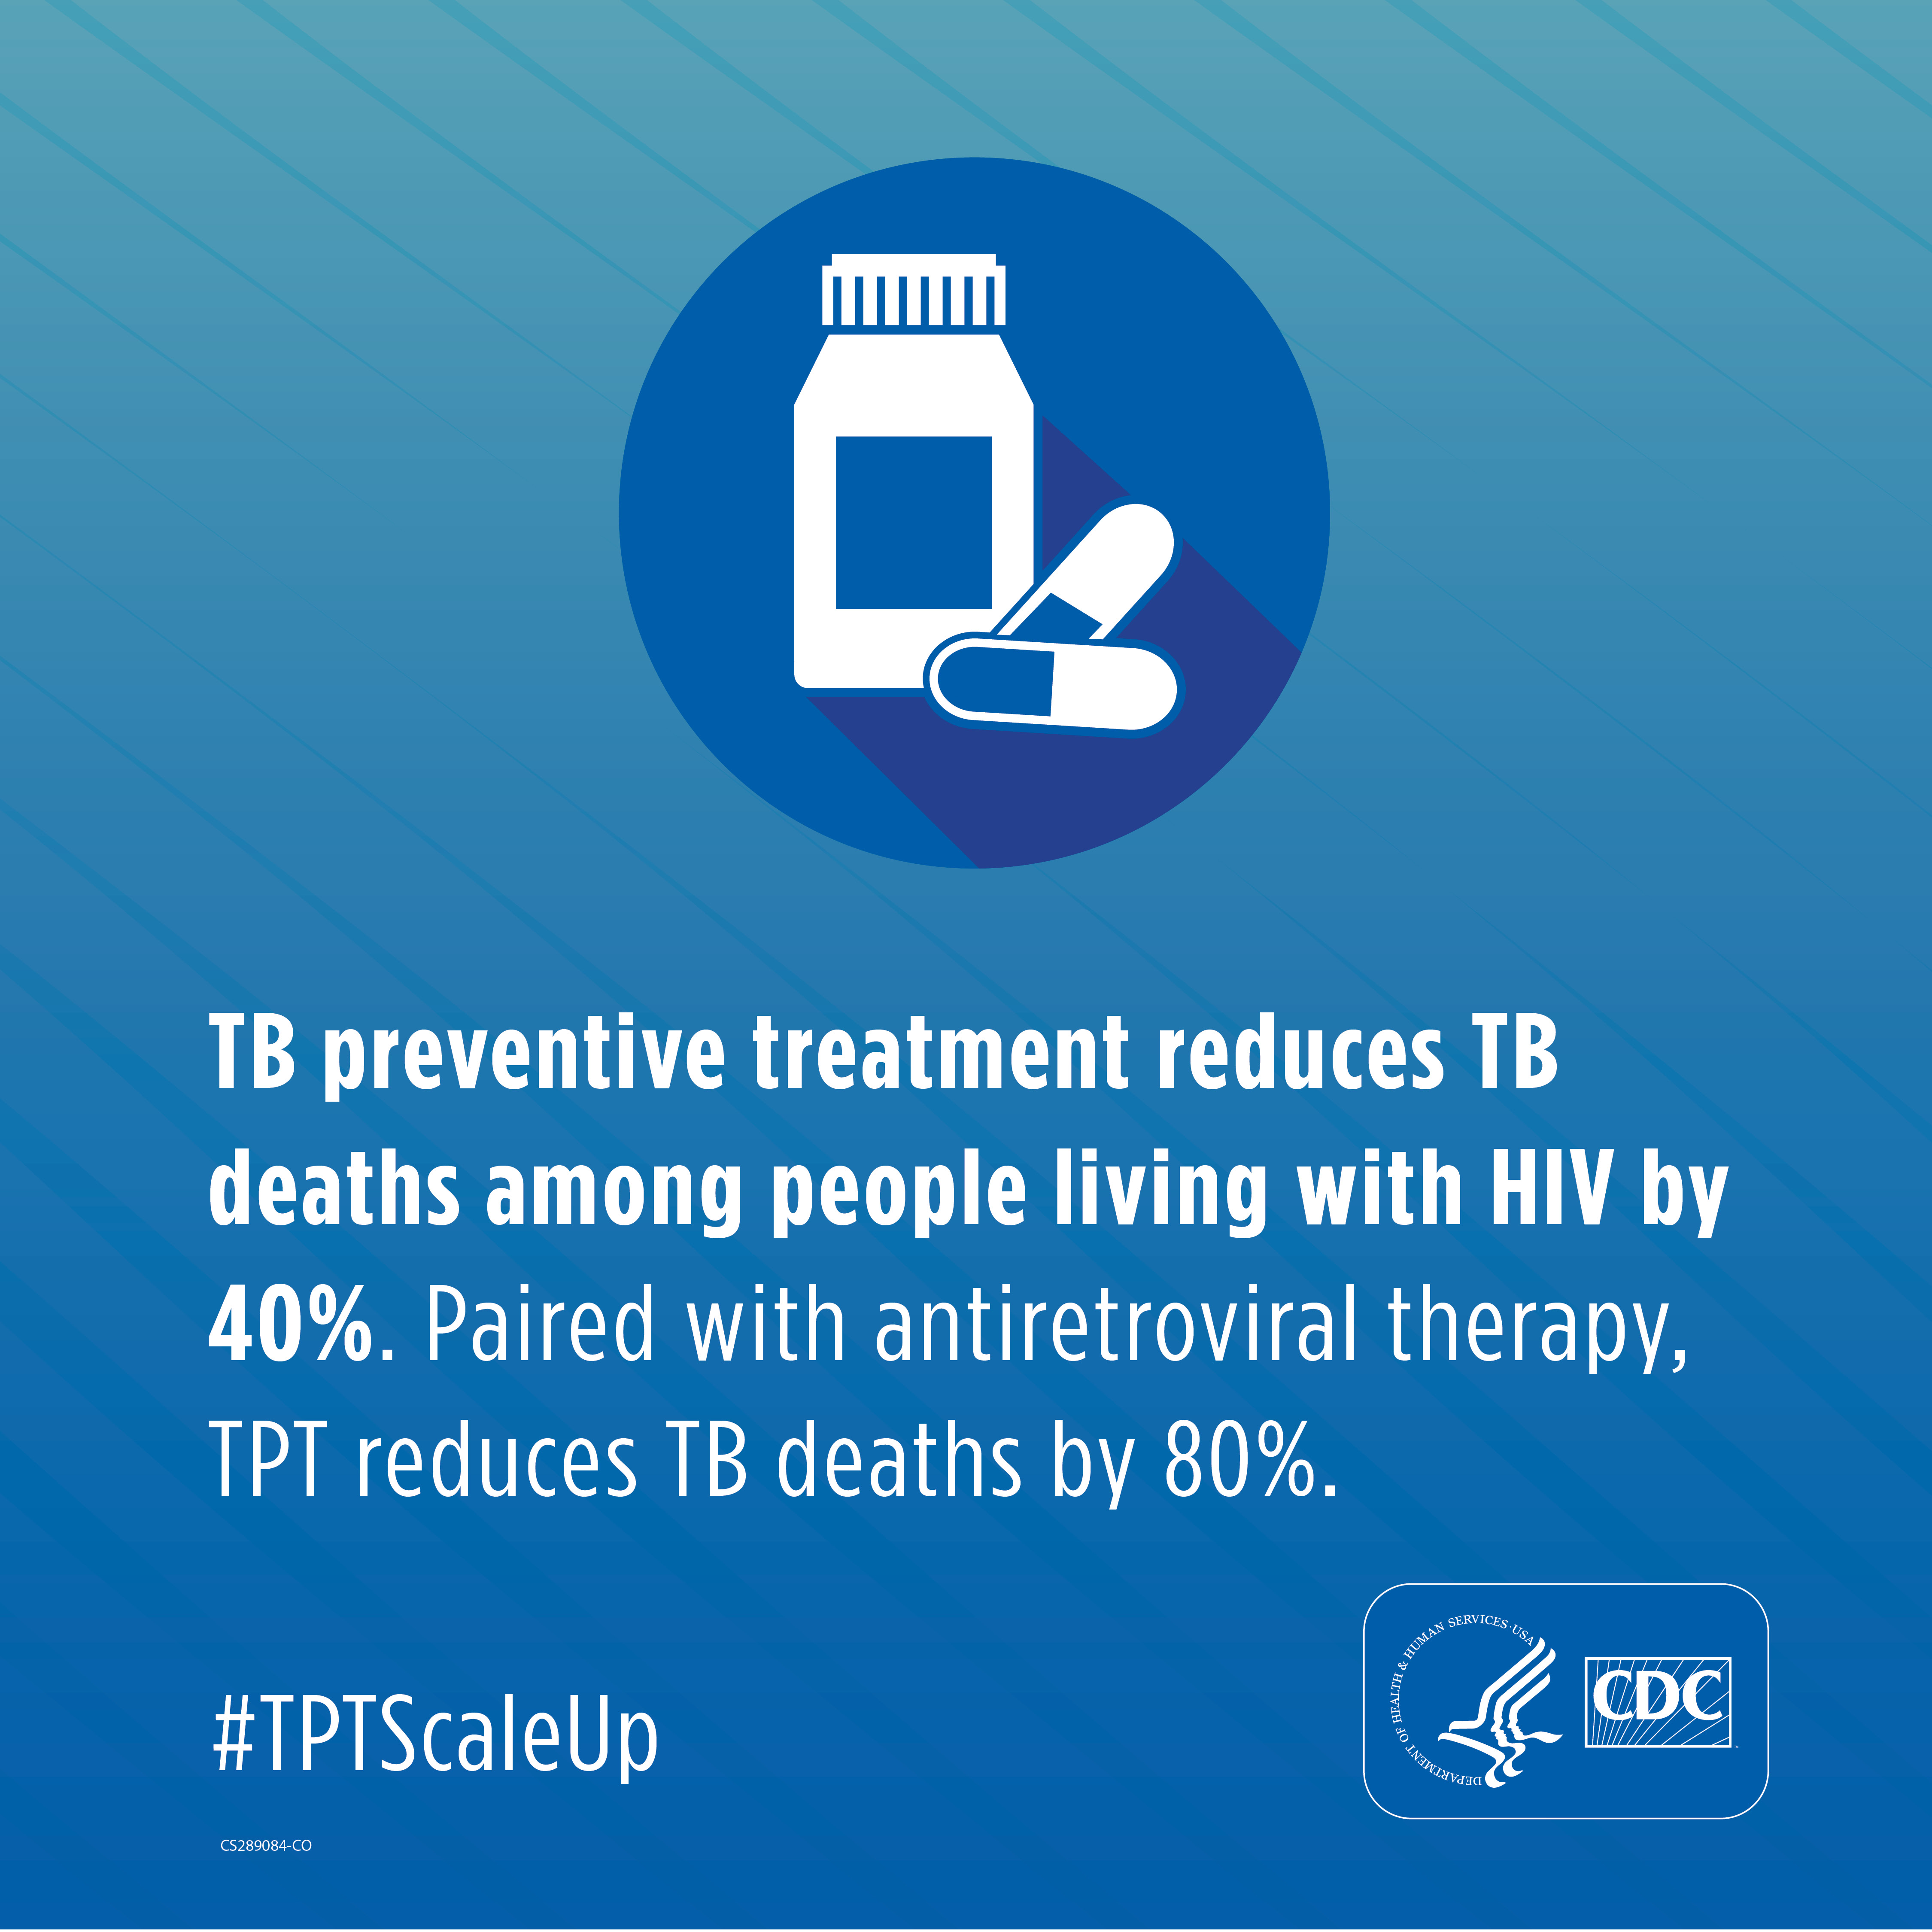 Global Tuberculosis (TB) Social Media Toolkit